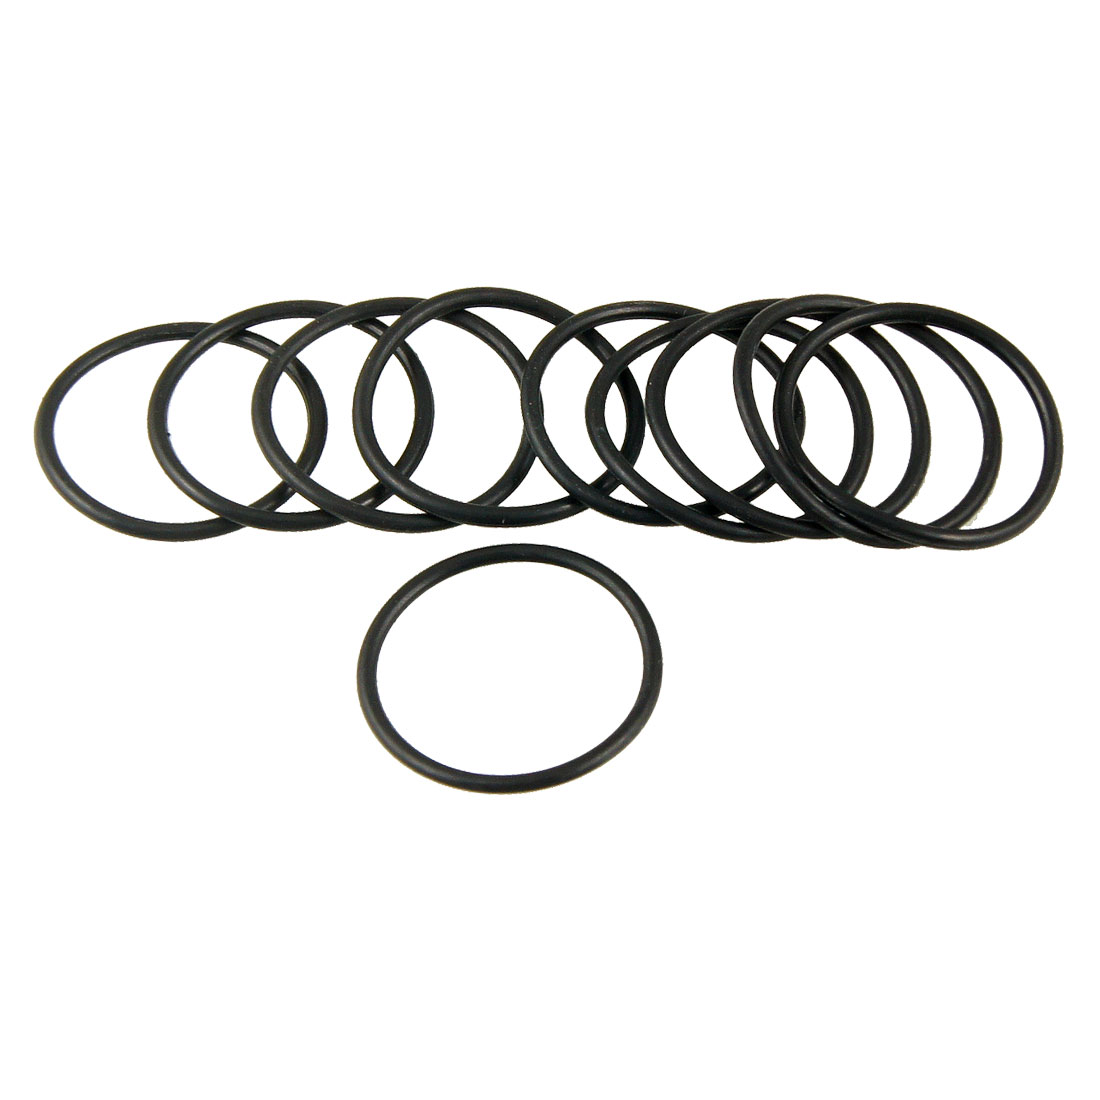 10 Pcs Black 28mm OD 2mm Thickness Nitrile Rubber O-ring Oil Seal Gaskets